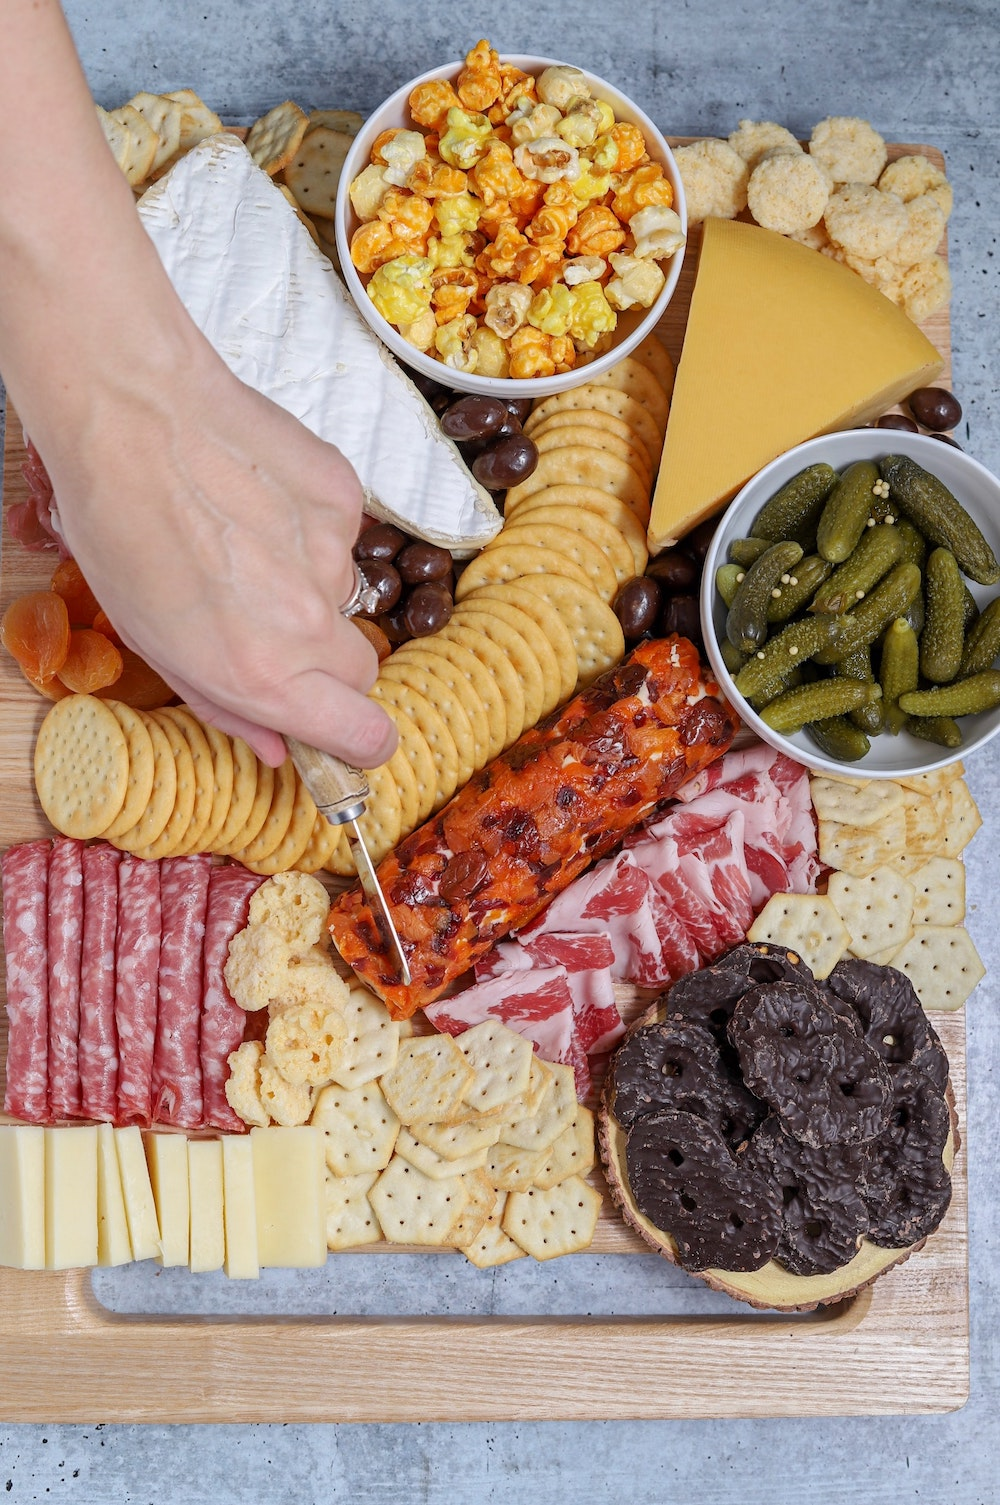 The best new family recipes I discovered in 2020: Charcuterie boards and snack trays make the list